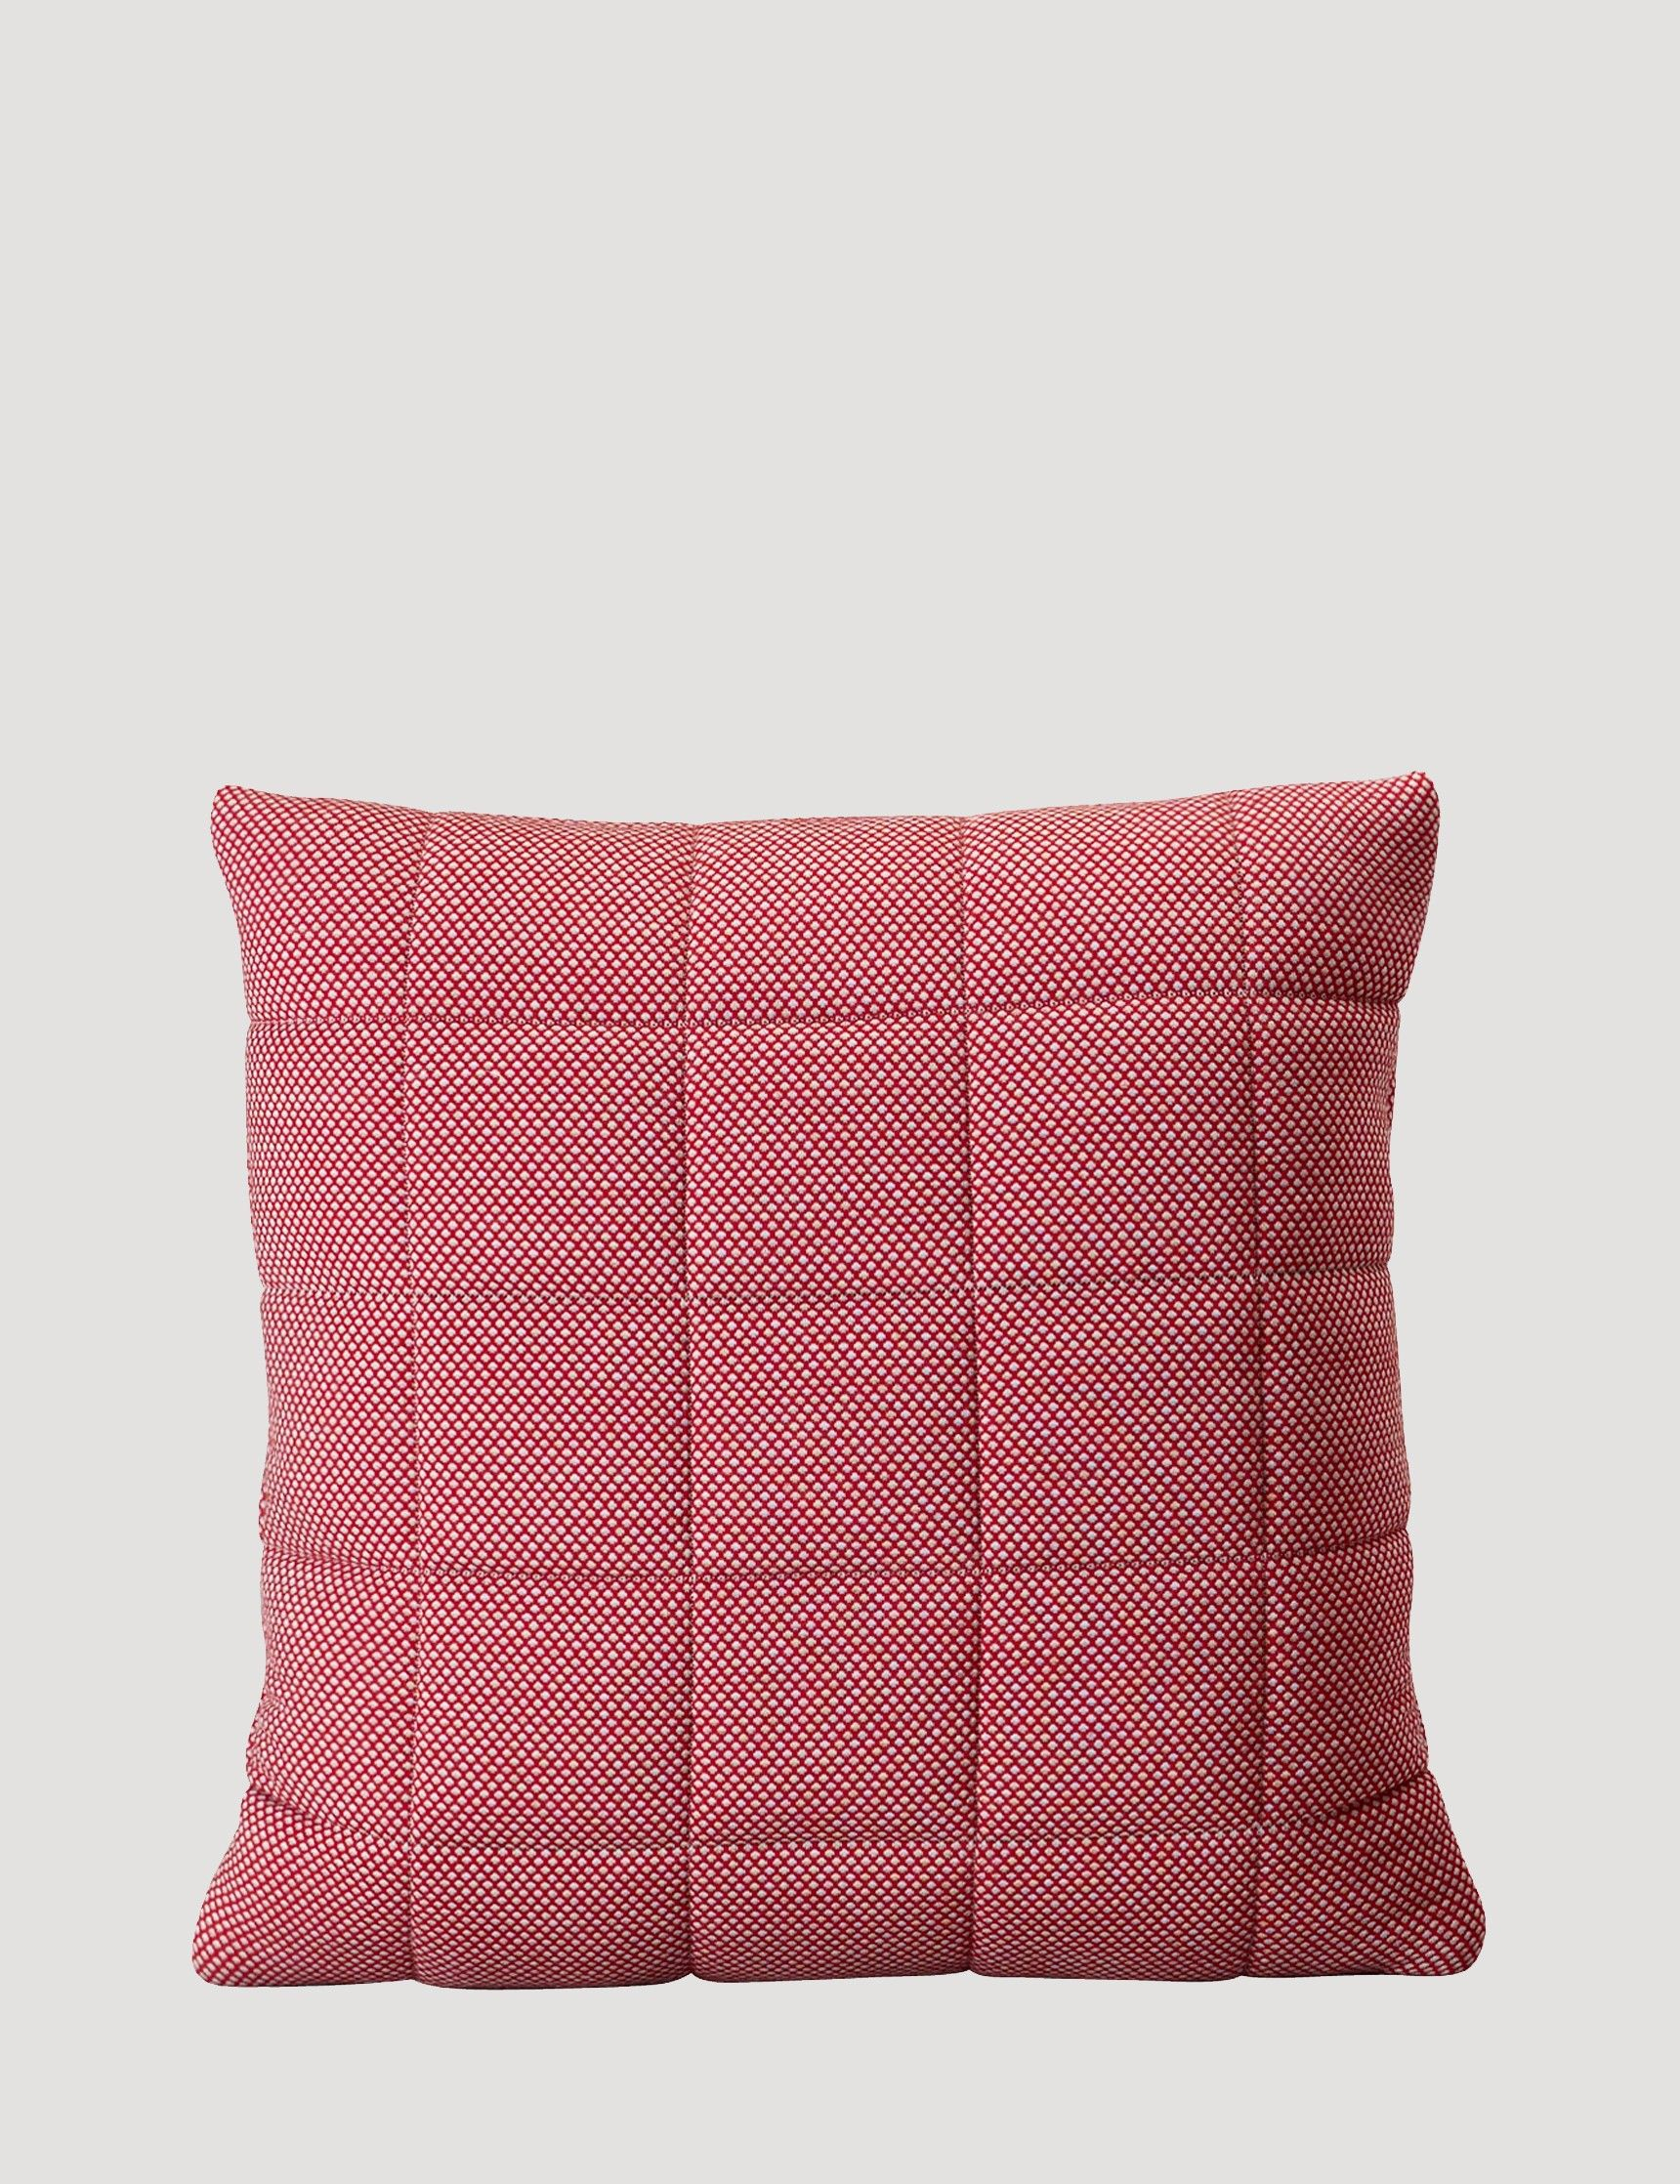 "Light Red Soft Grid 20x20"" or 16x24"" pillow / Muuto"